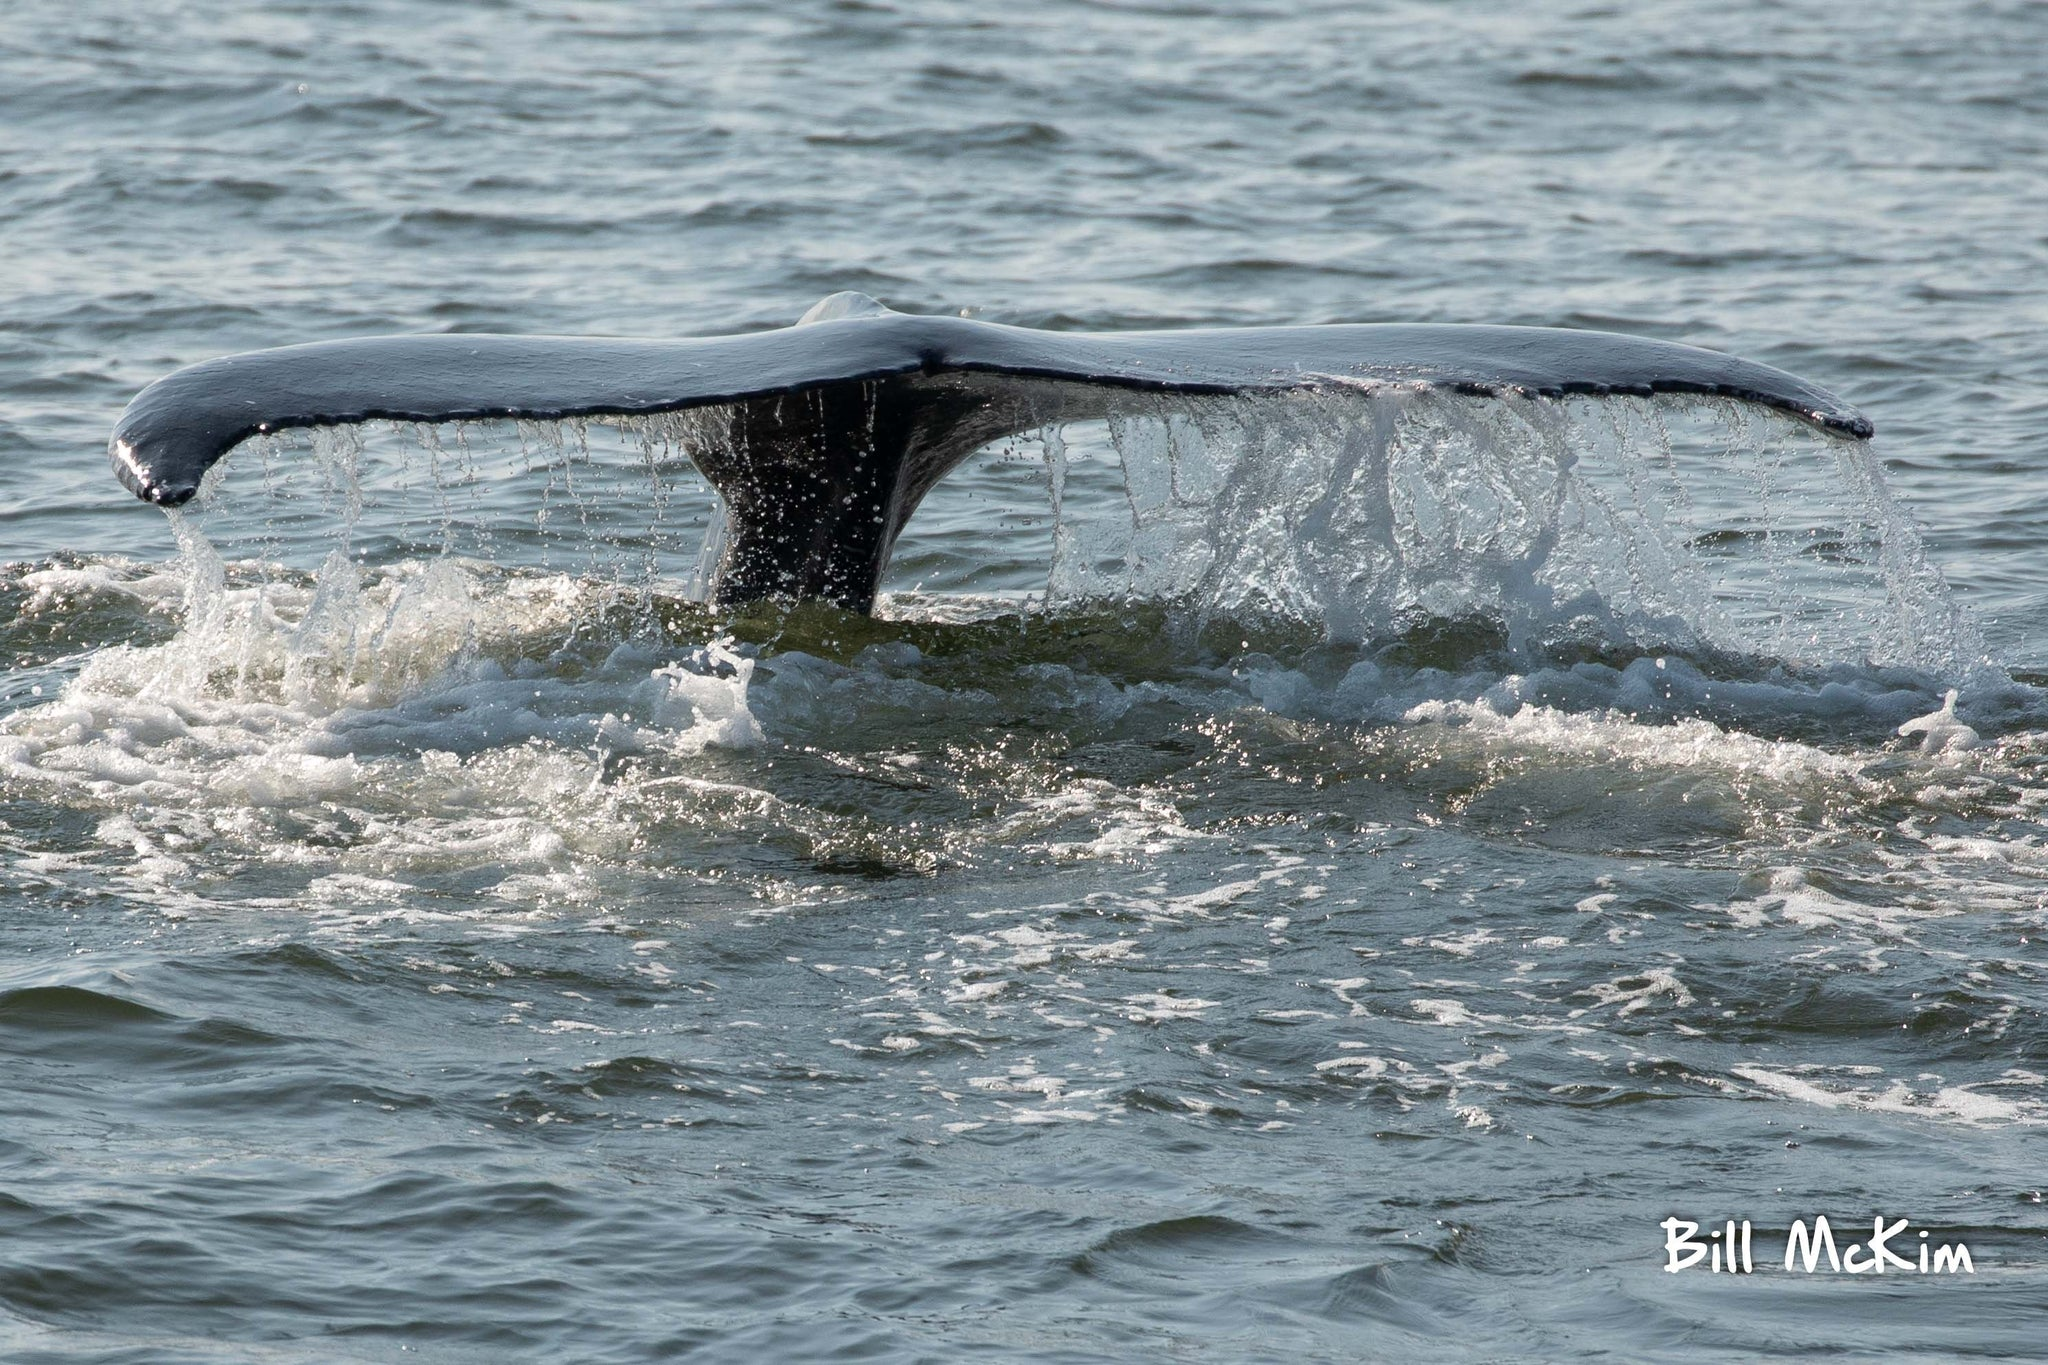 Bill mckim whale watching photos